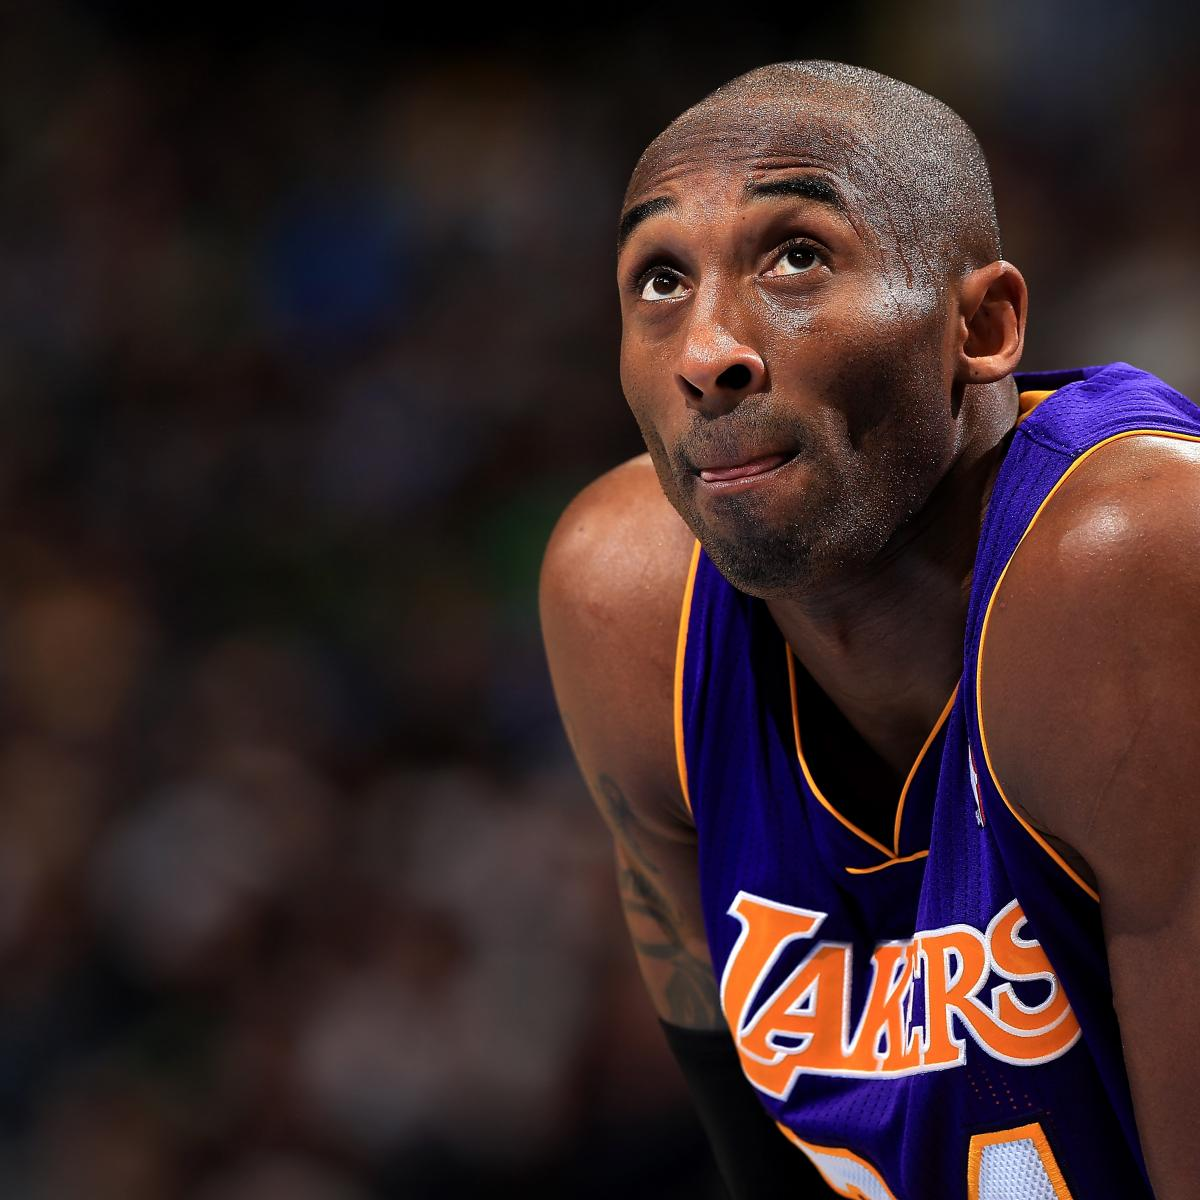 Kobe Bryant Joins Twitter, World Subsequently Loses Their Black Mamba ...